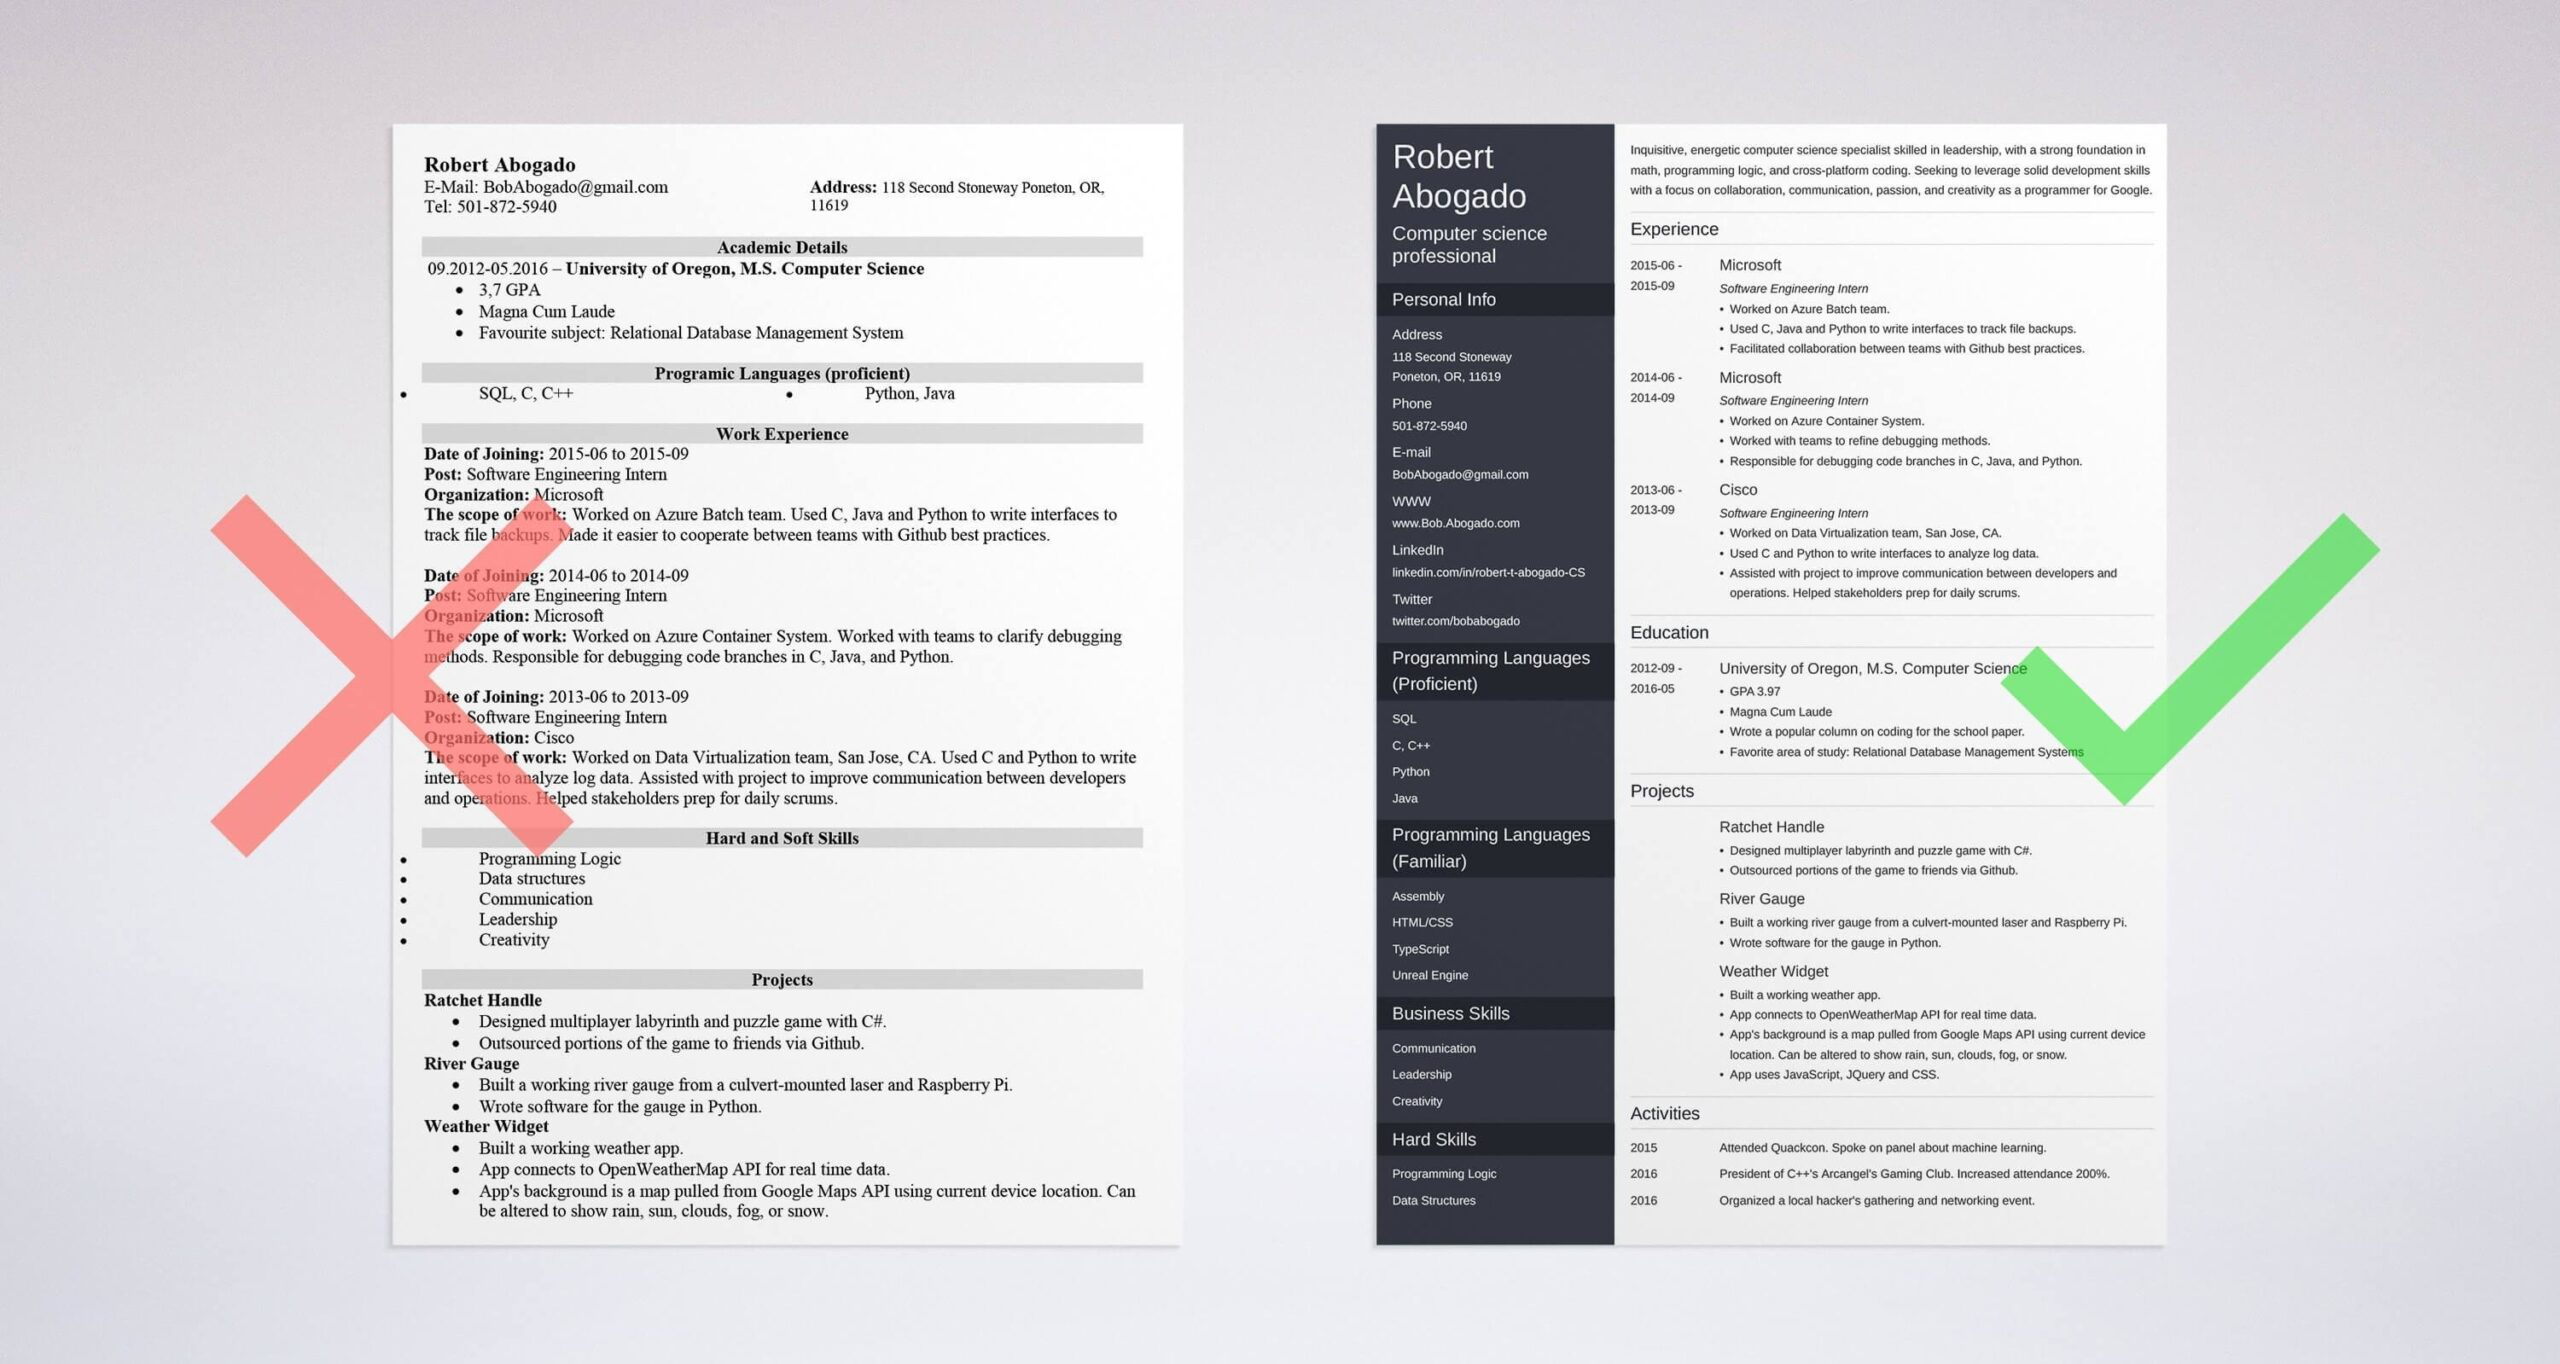 computer science resume example template guide for btech cse student fresher samples Resume Resume For Btech Cse Student Fresher